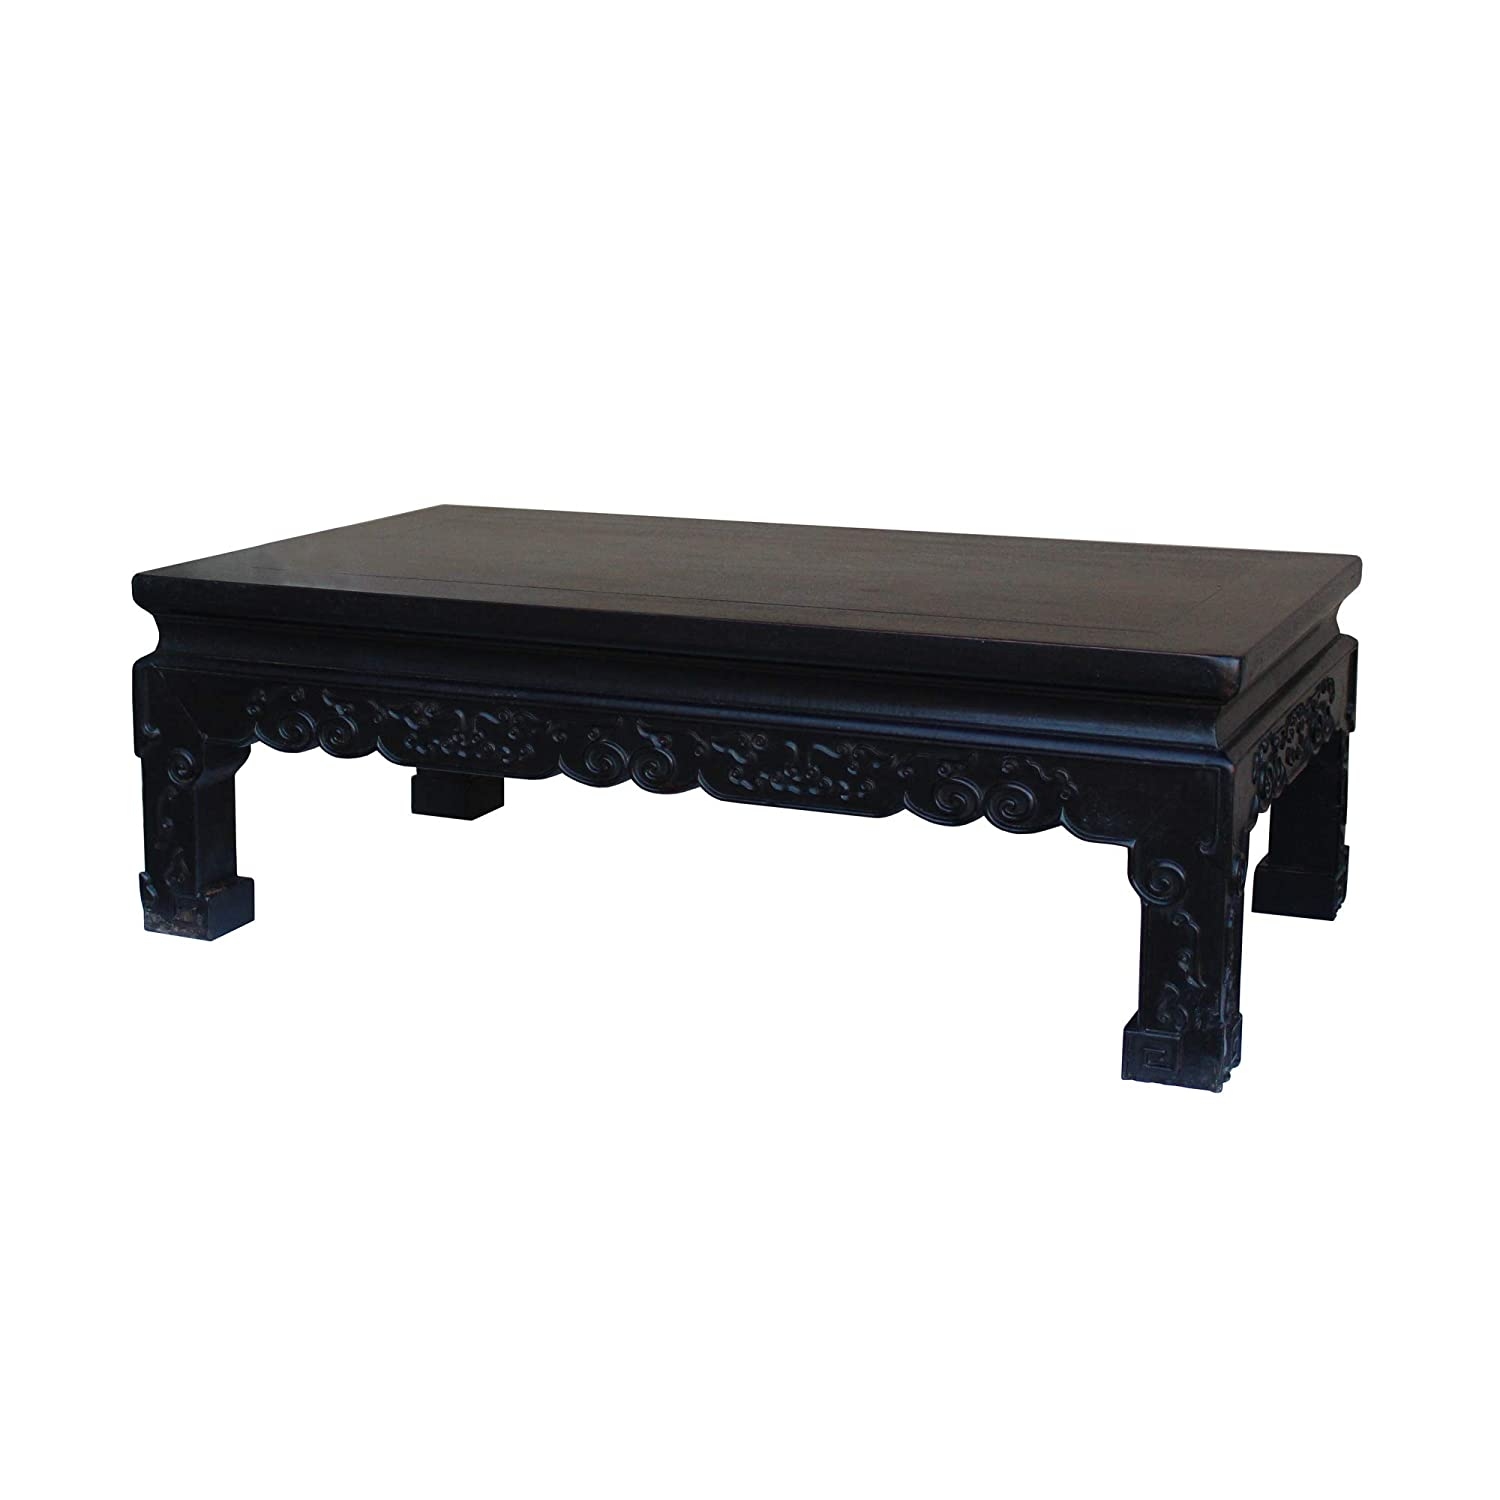 Merveilleux Amazon.com: Chinese Handmade Dark Brown Rosewood Low Kang Table Stand  Acs4815: Kitchen U0026 Dining